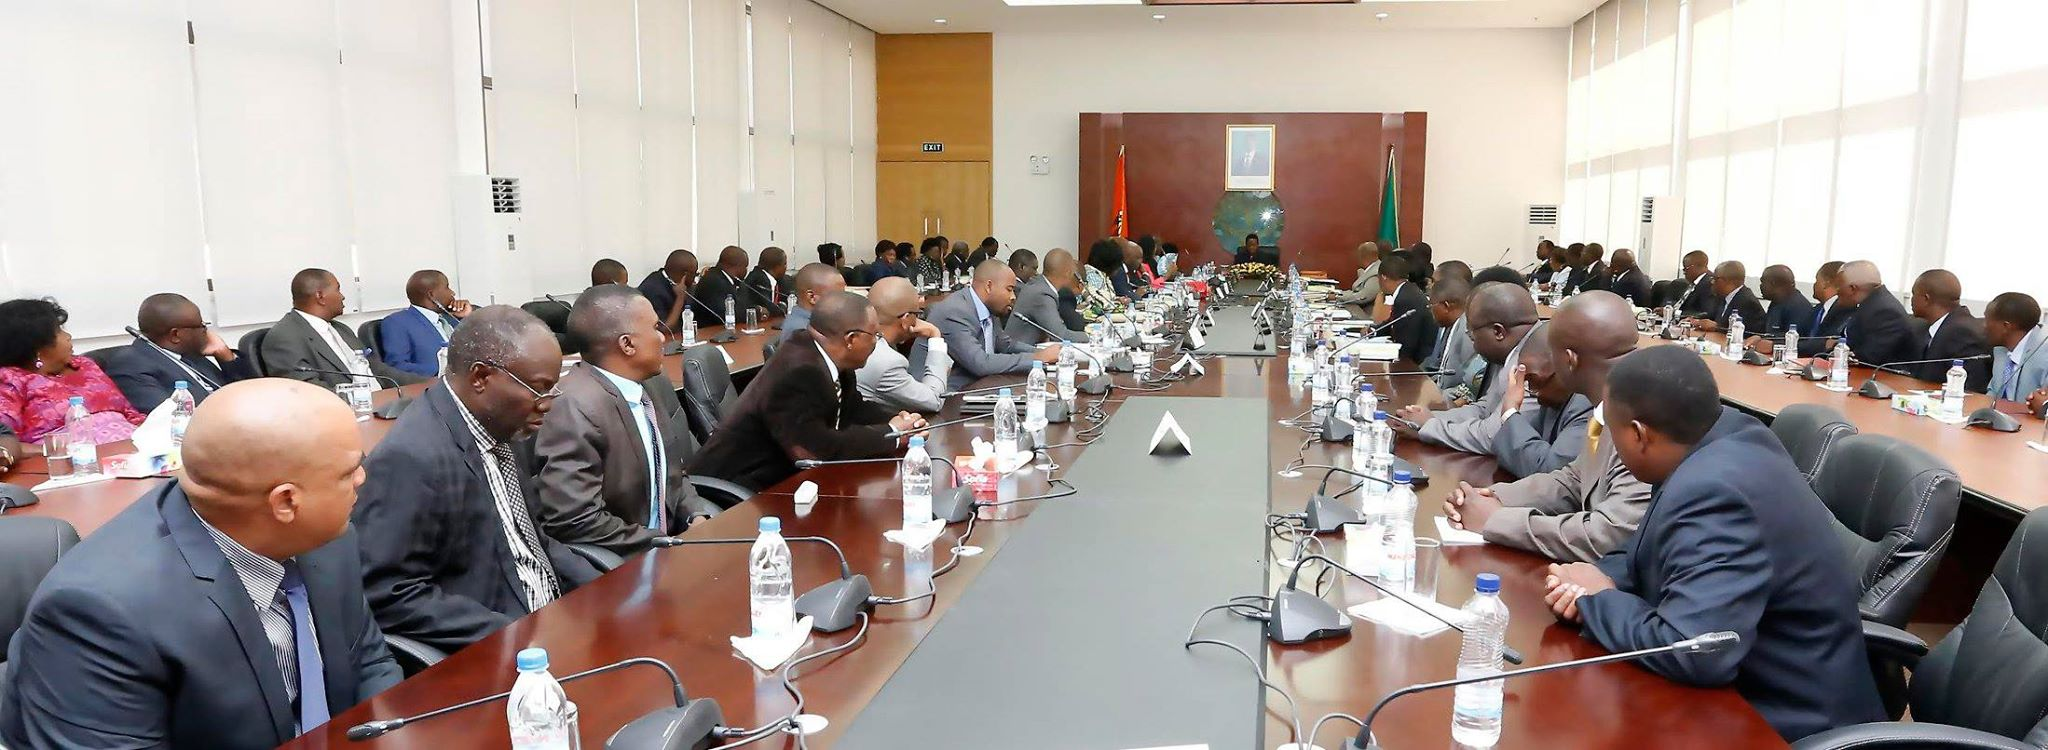 Photo of the day: cabinet meeting without pens or note books